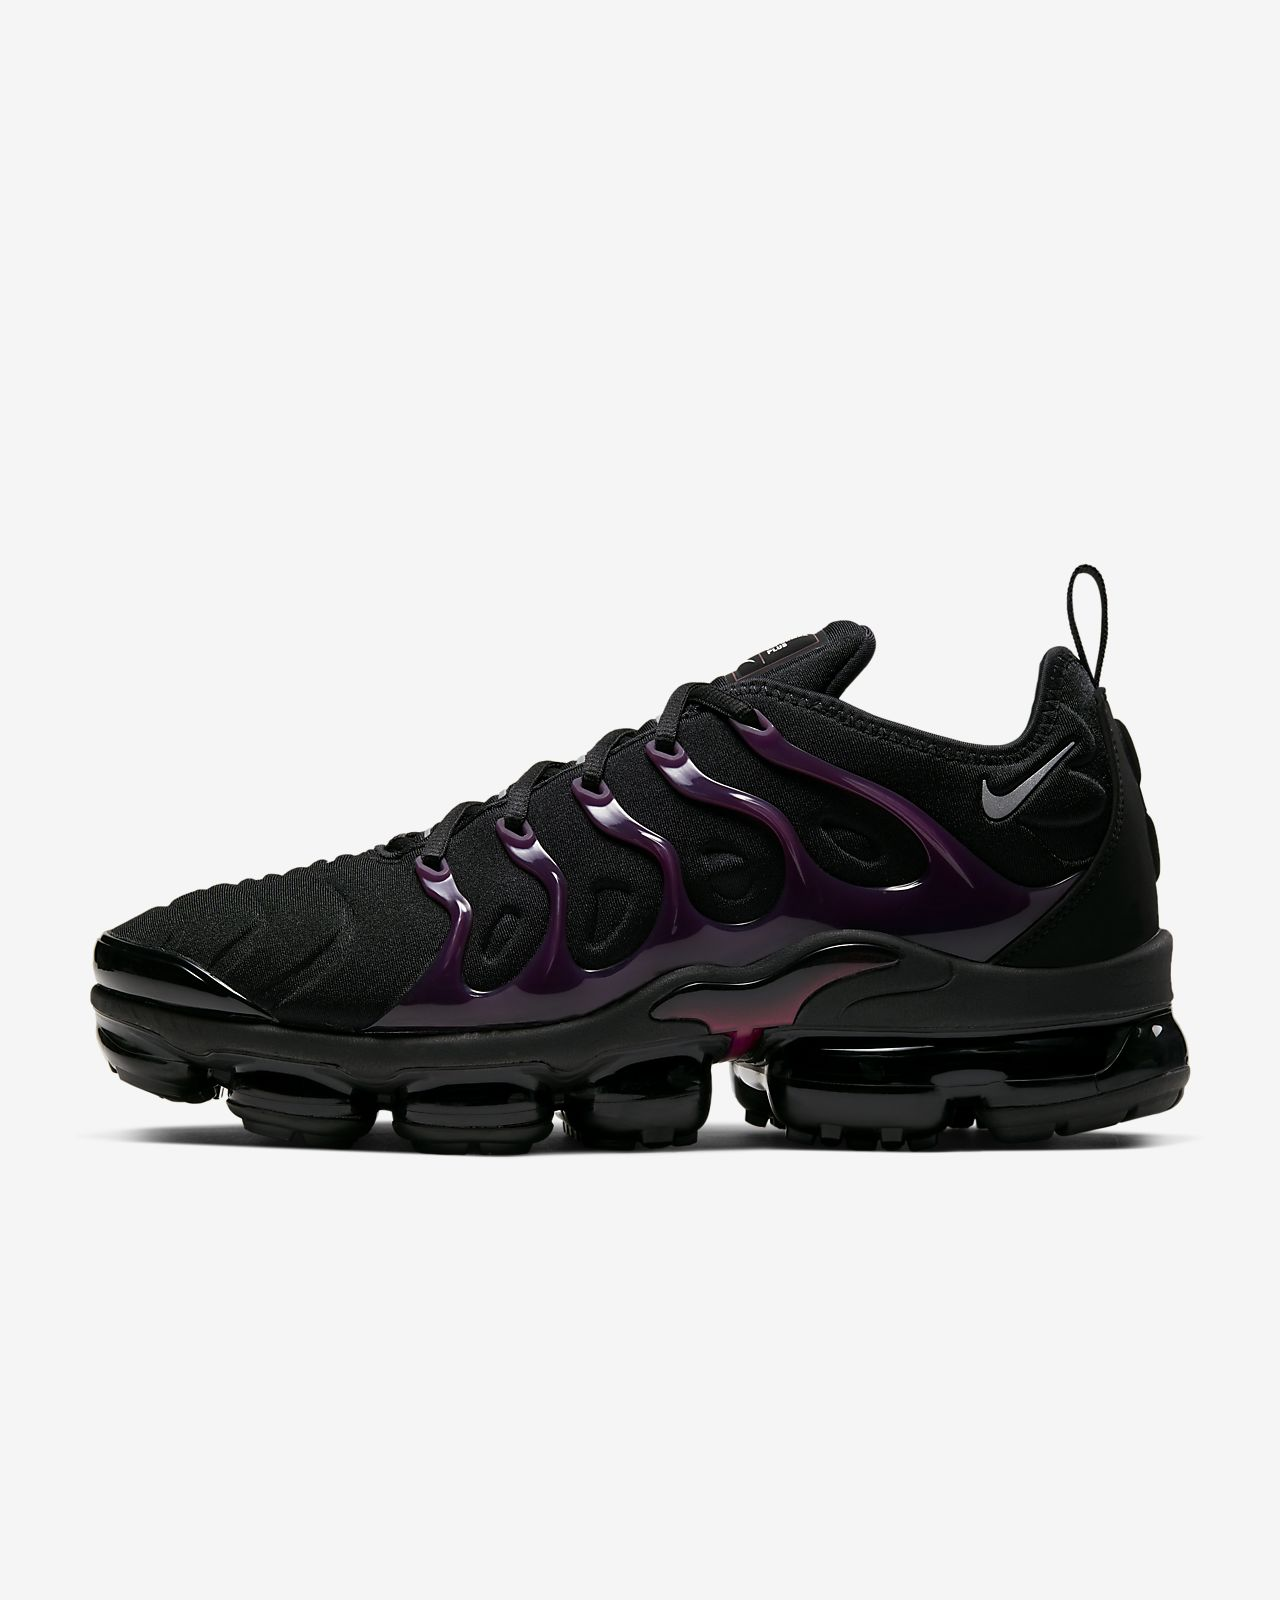 Nike Air VaporMax Plus herresko